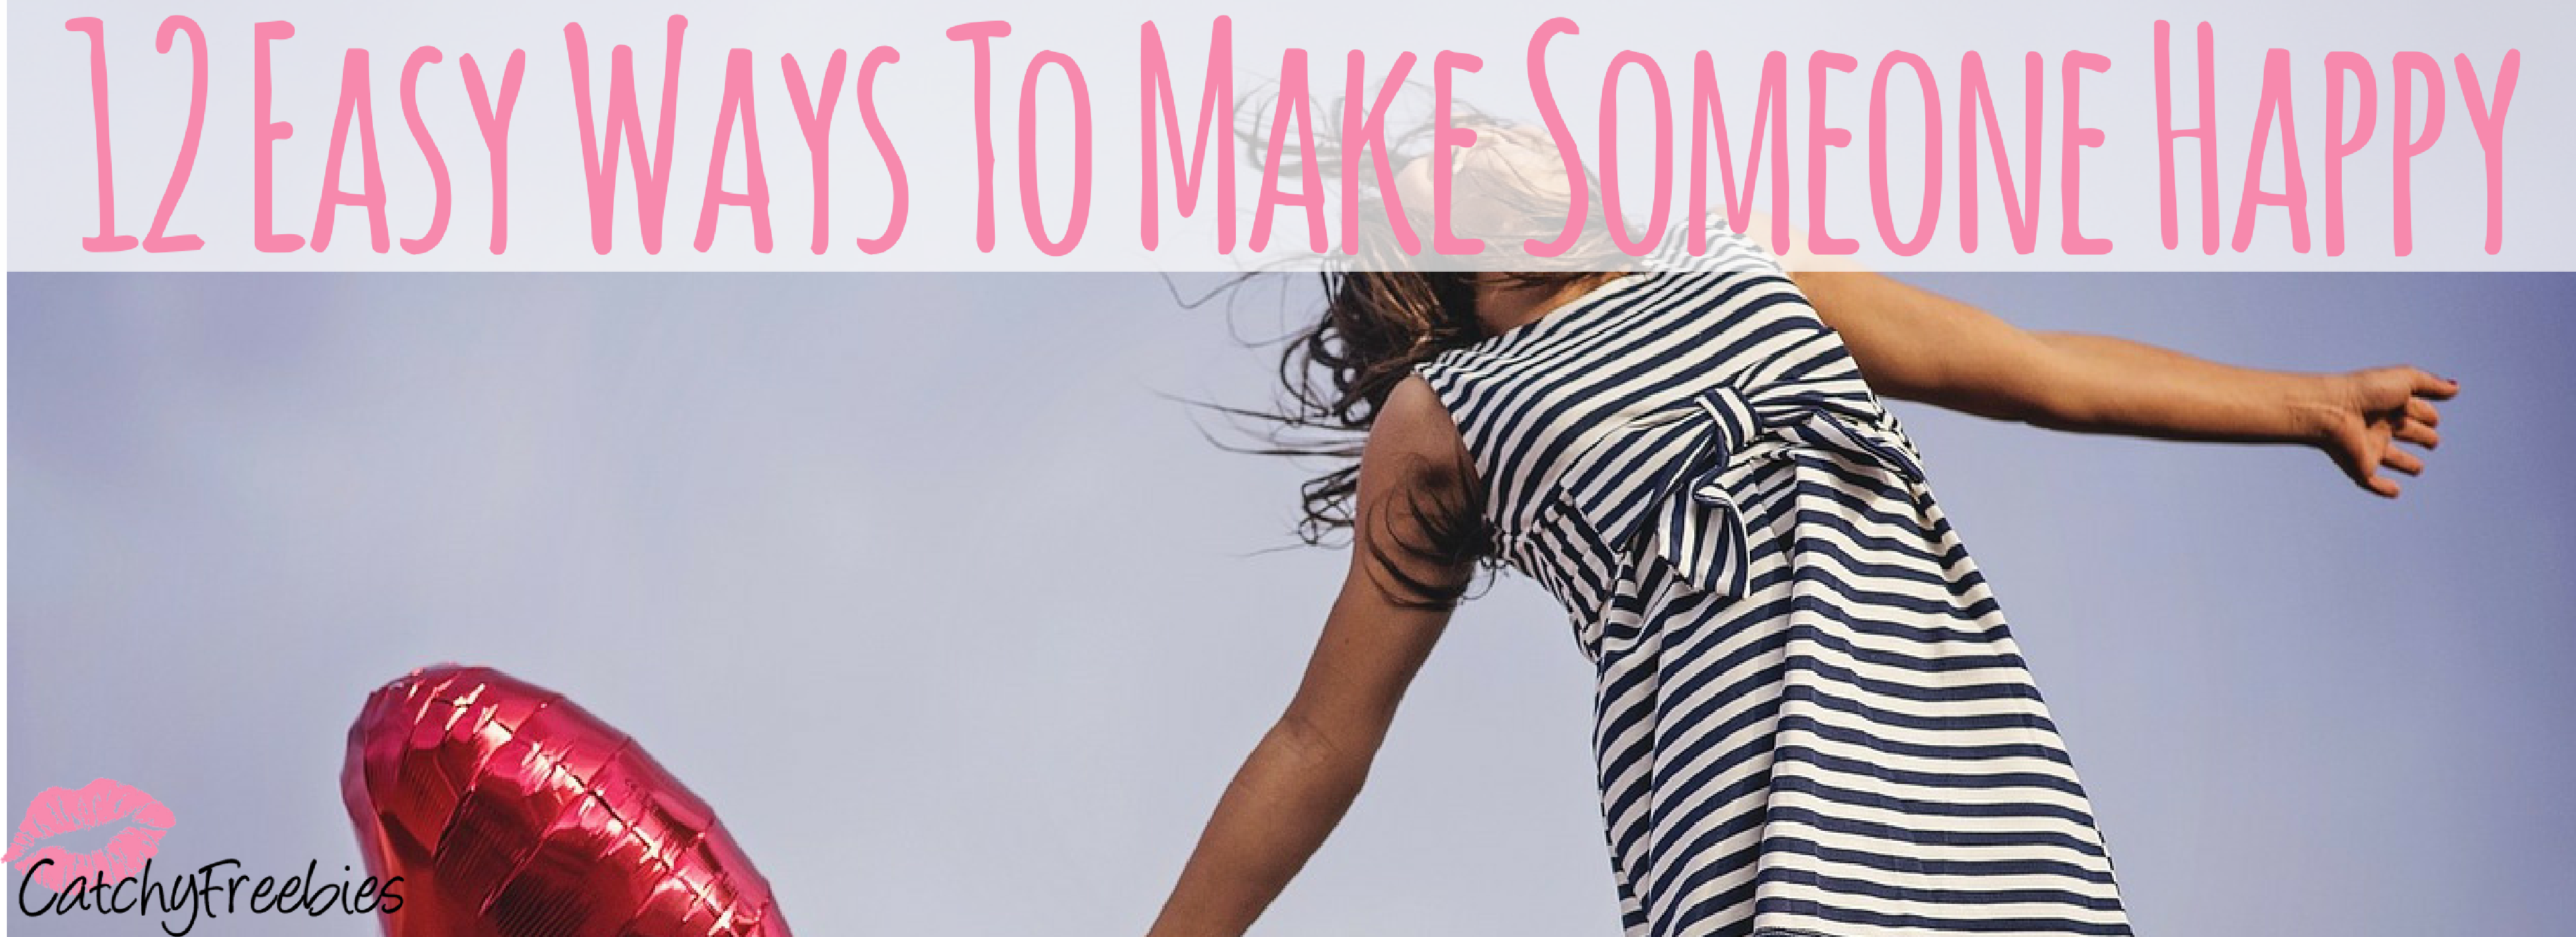 12 Easy Ways To Make Someone Happy